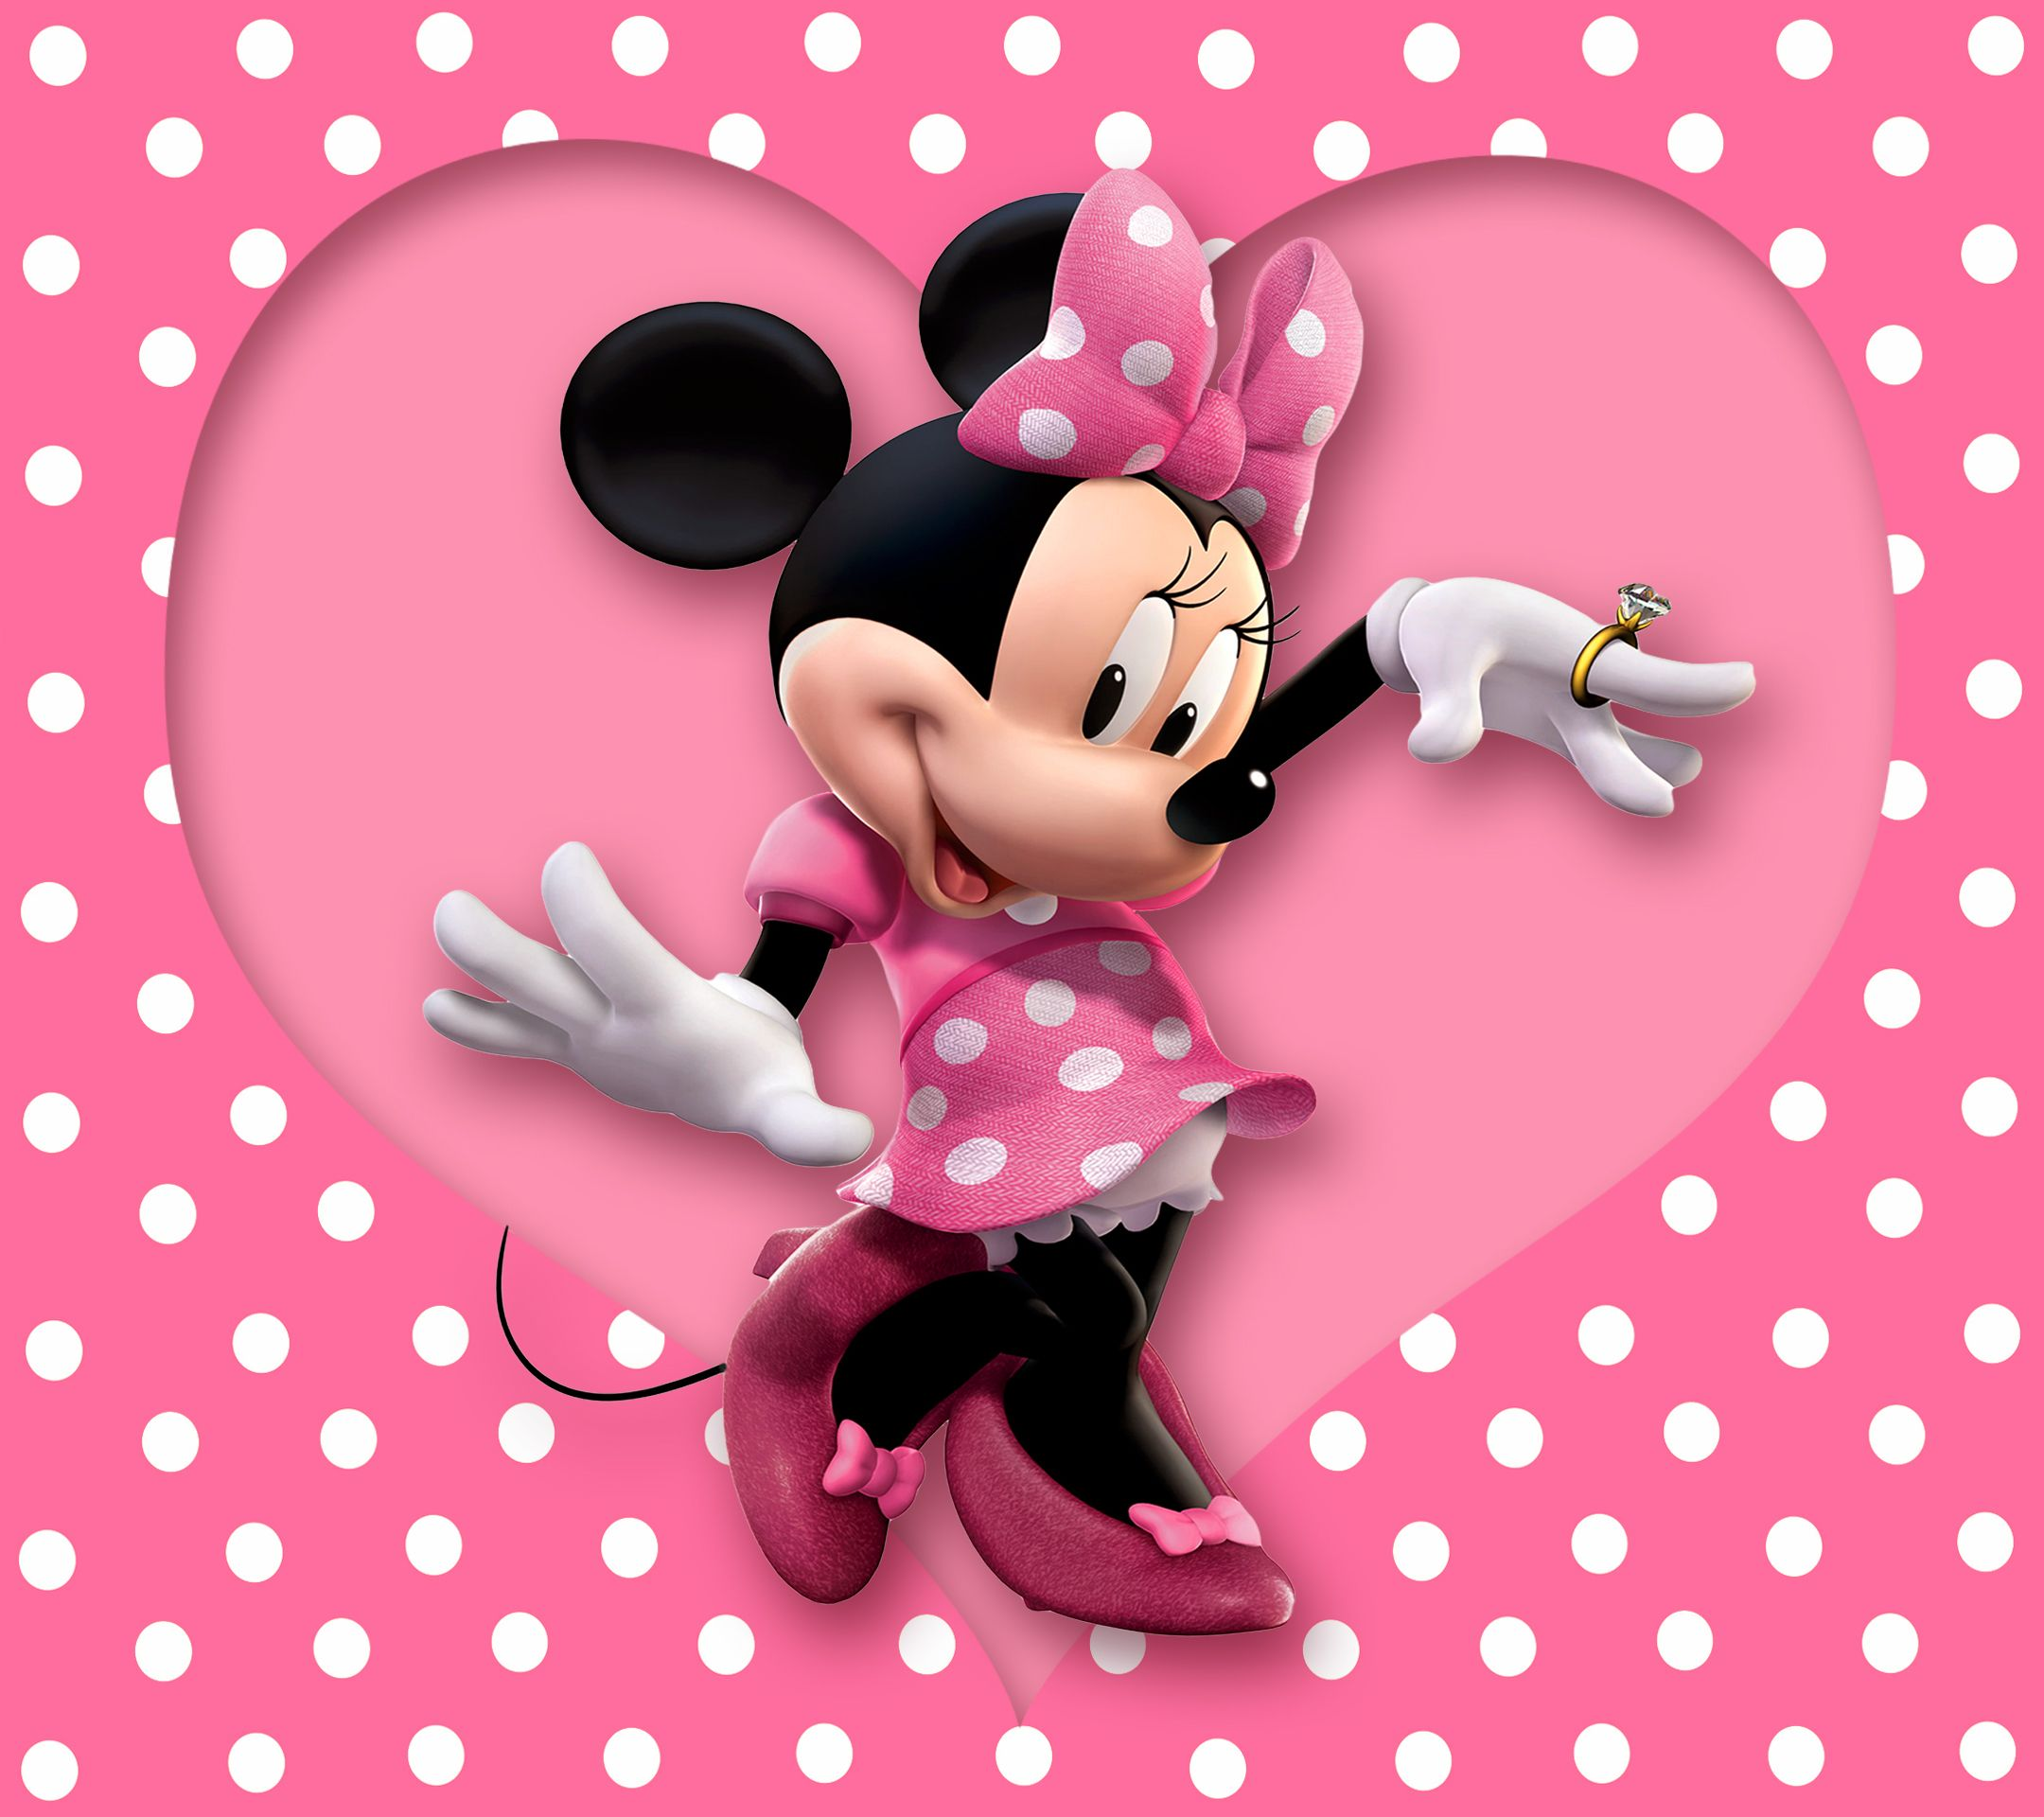 Minnie mouse wallpaper cartoon disney pink polka dots heart minnie mouse minnie mouse - Minnie mouse wallpaper pinterest ...